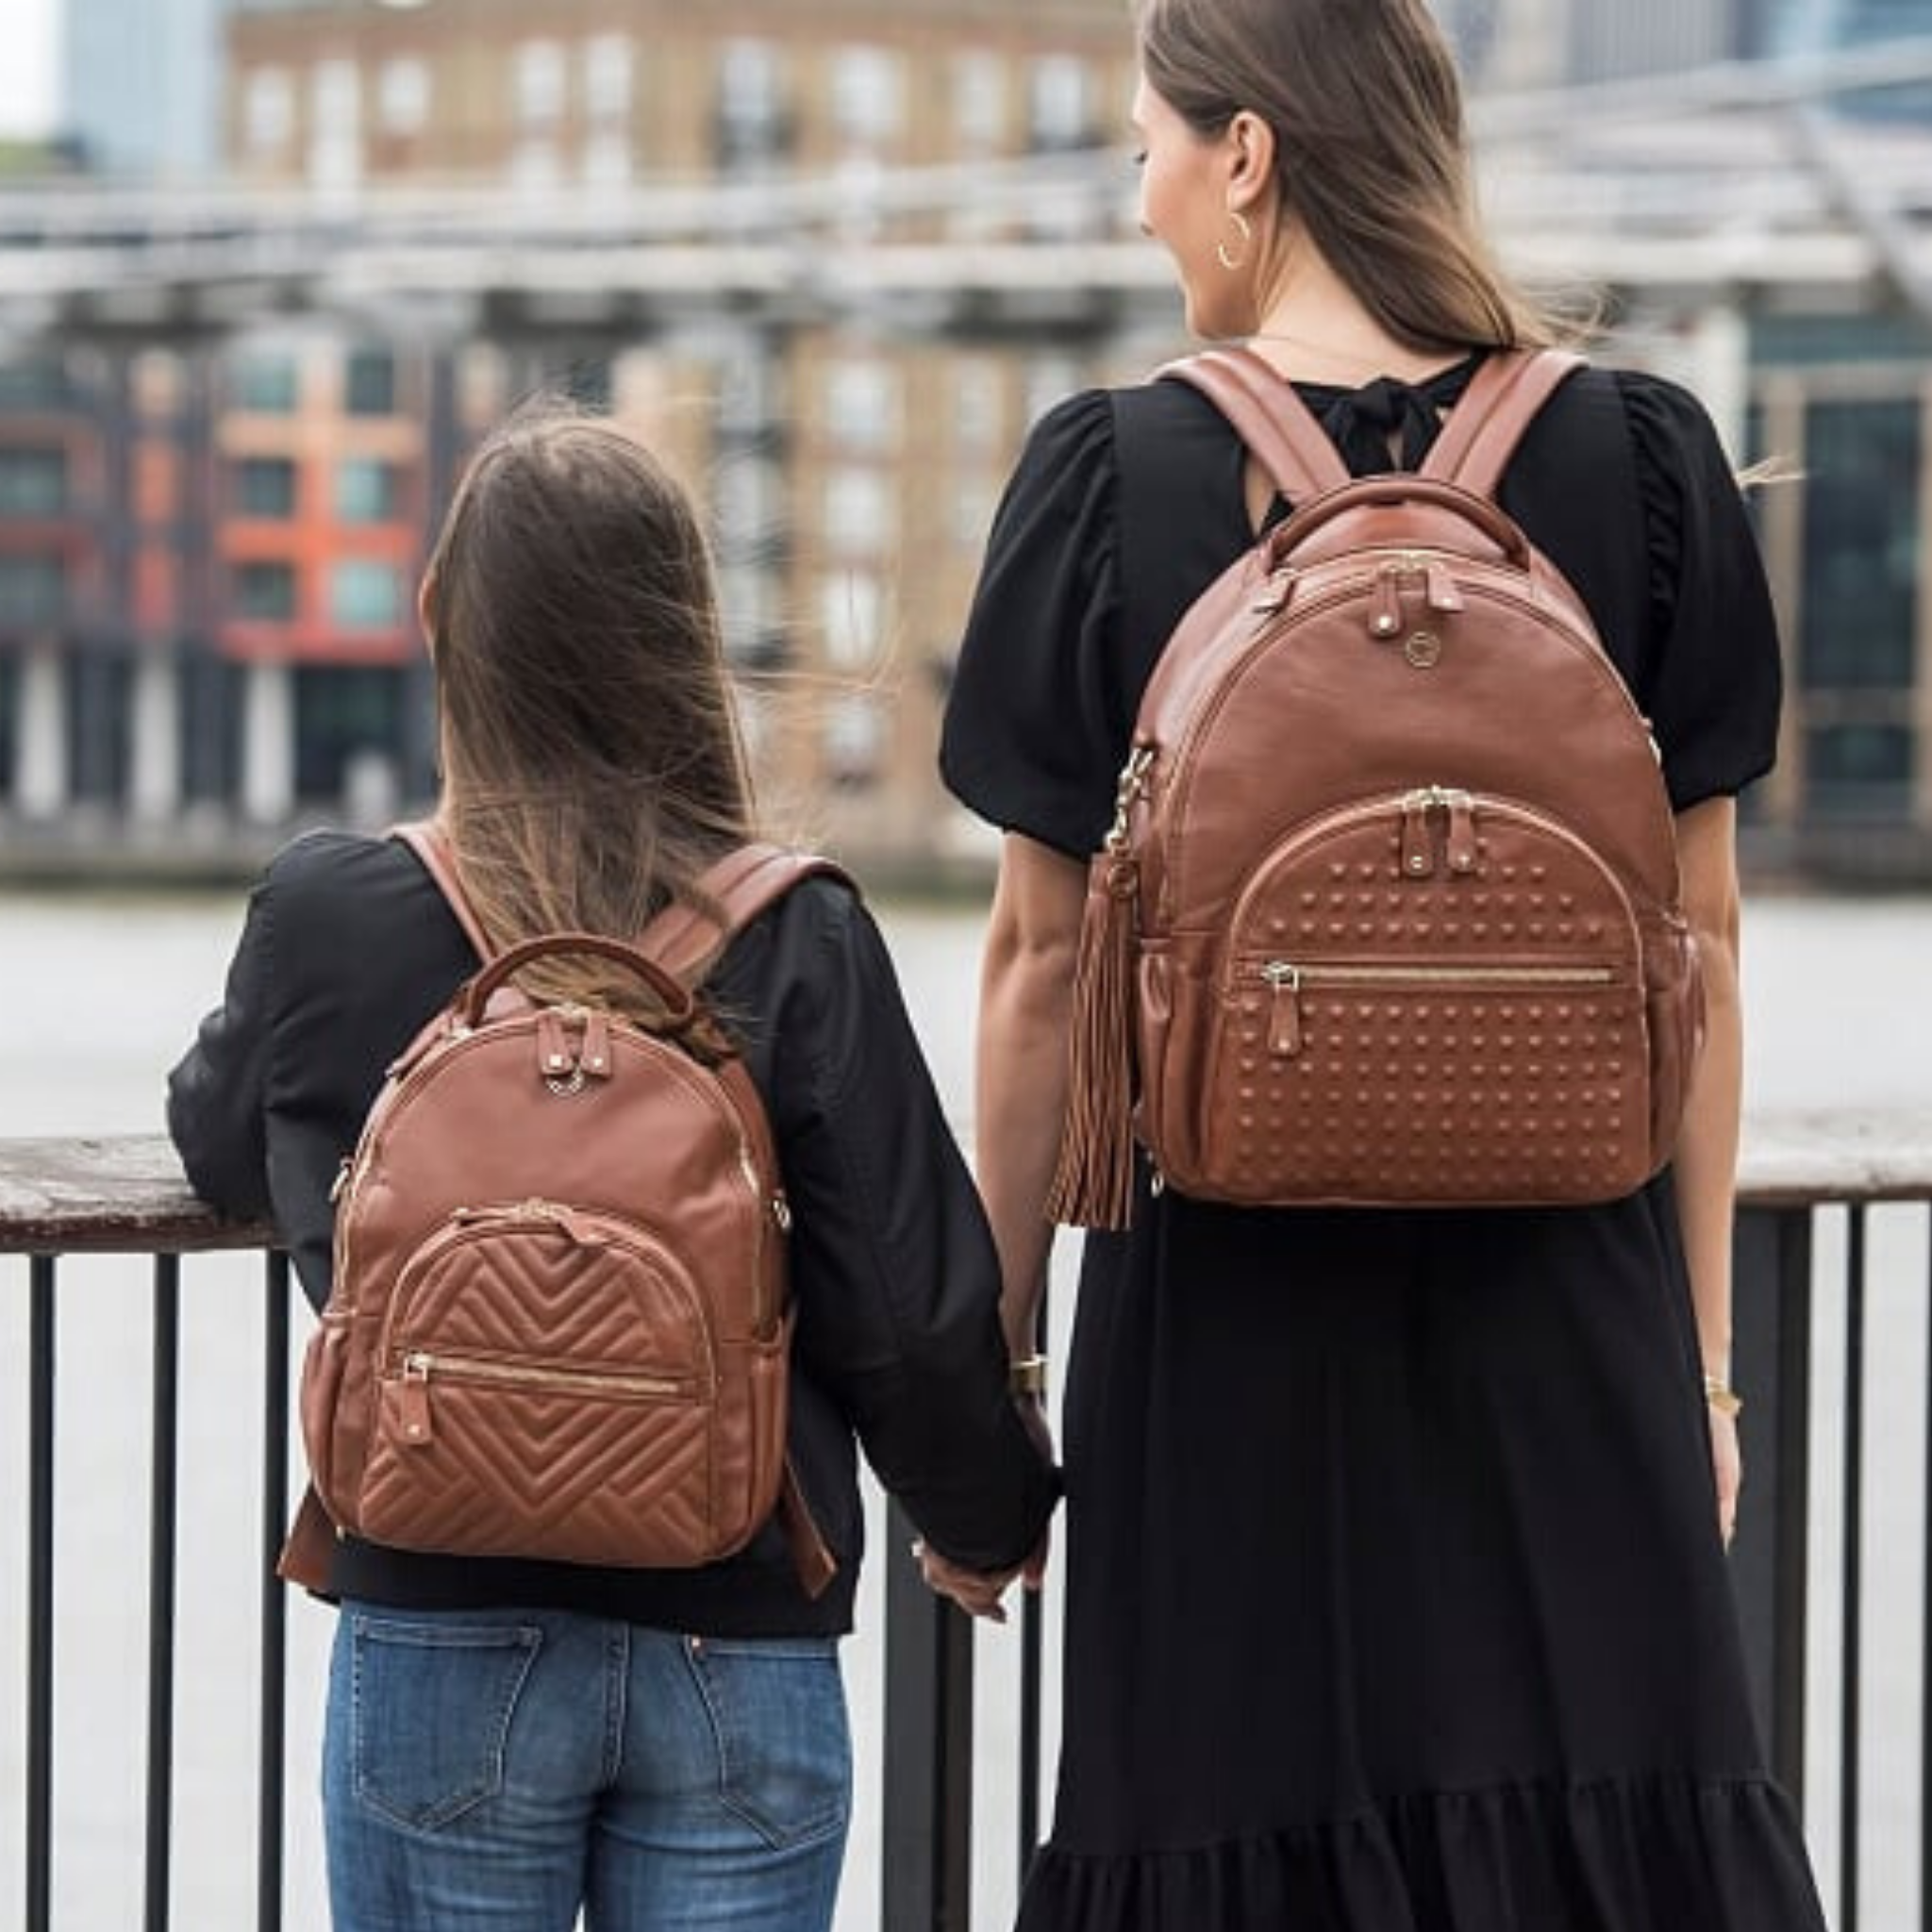 Our award-winning studded leather backpack is adored by stylish women across the world. The perfect everyday bag to feel good and look even better.